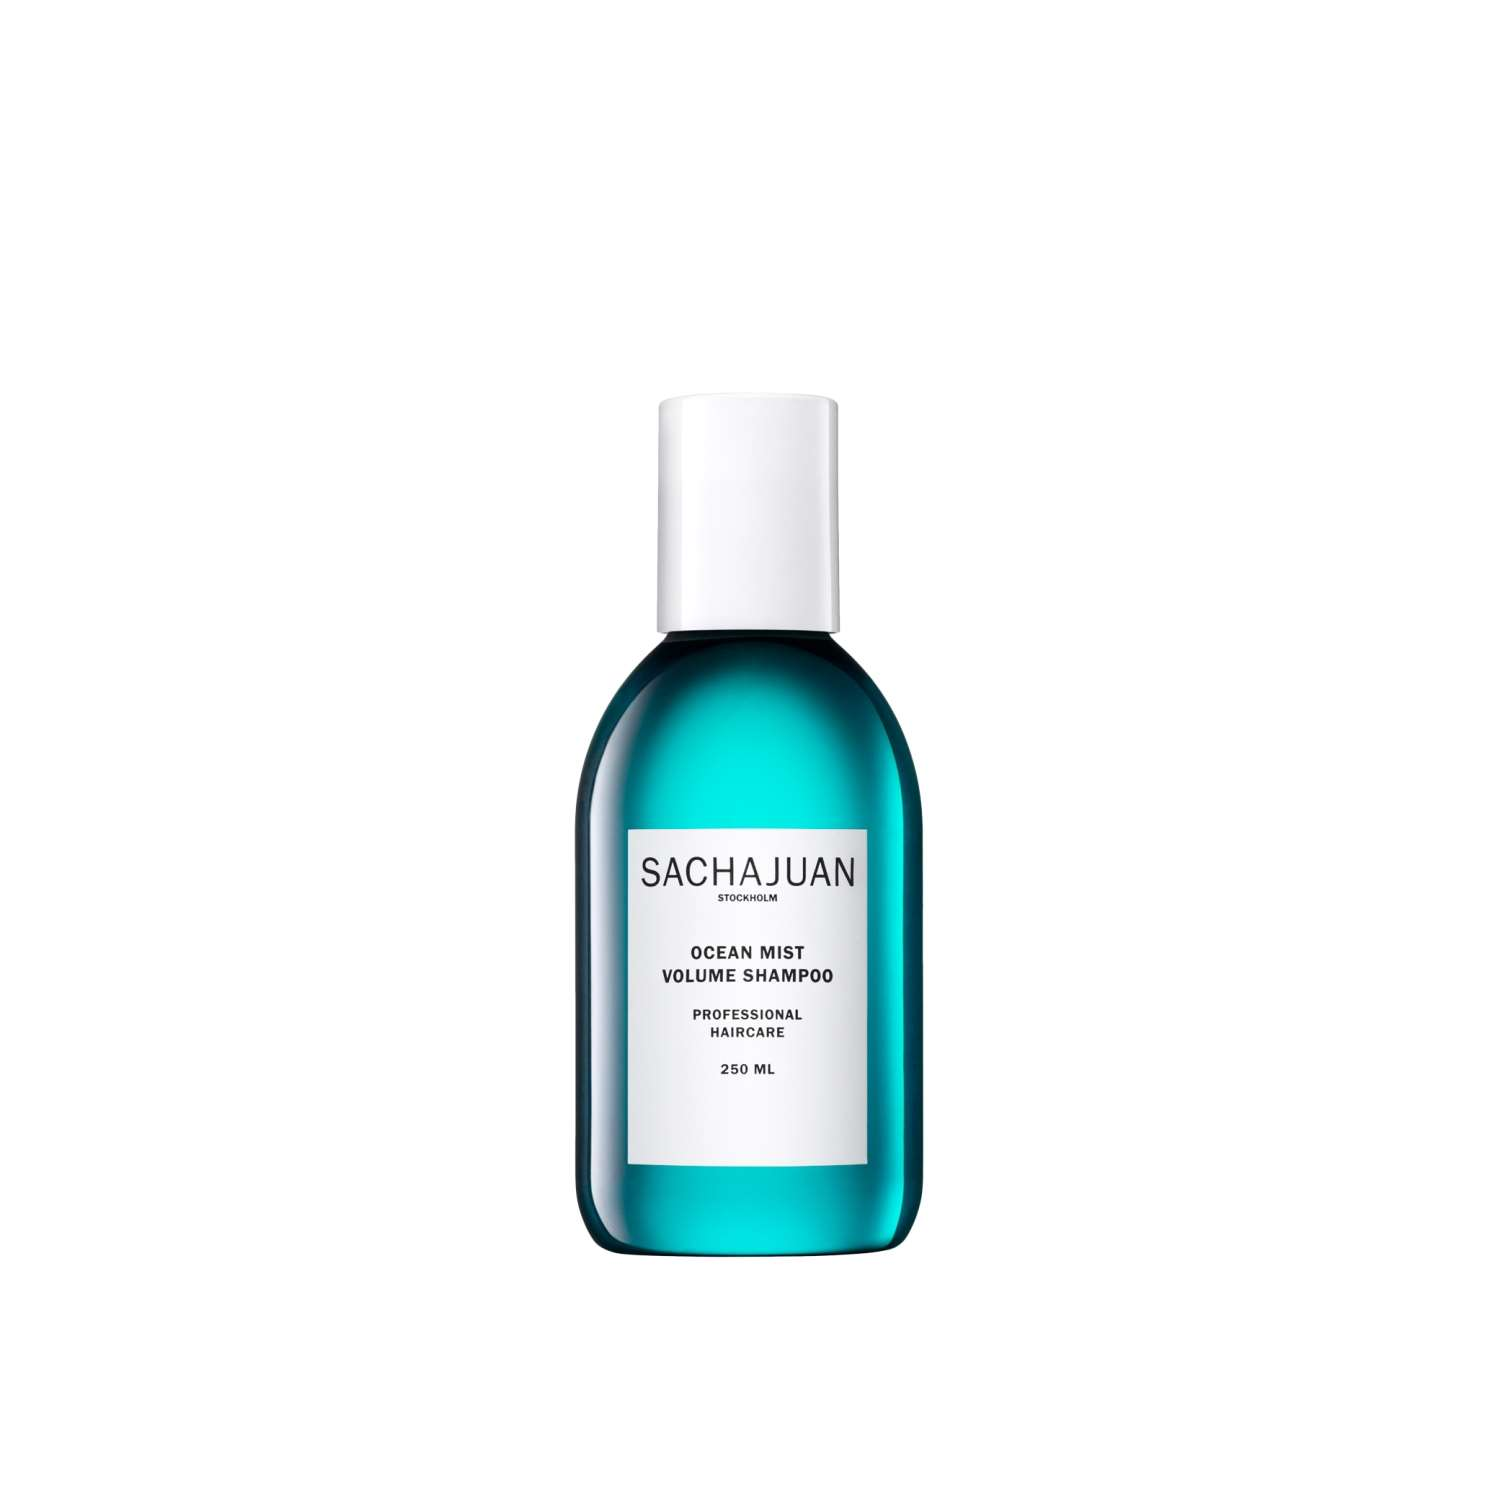 Ocean Mist Volume Shampoo 250 ml